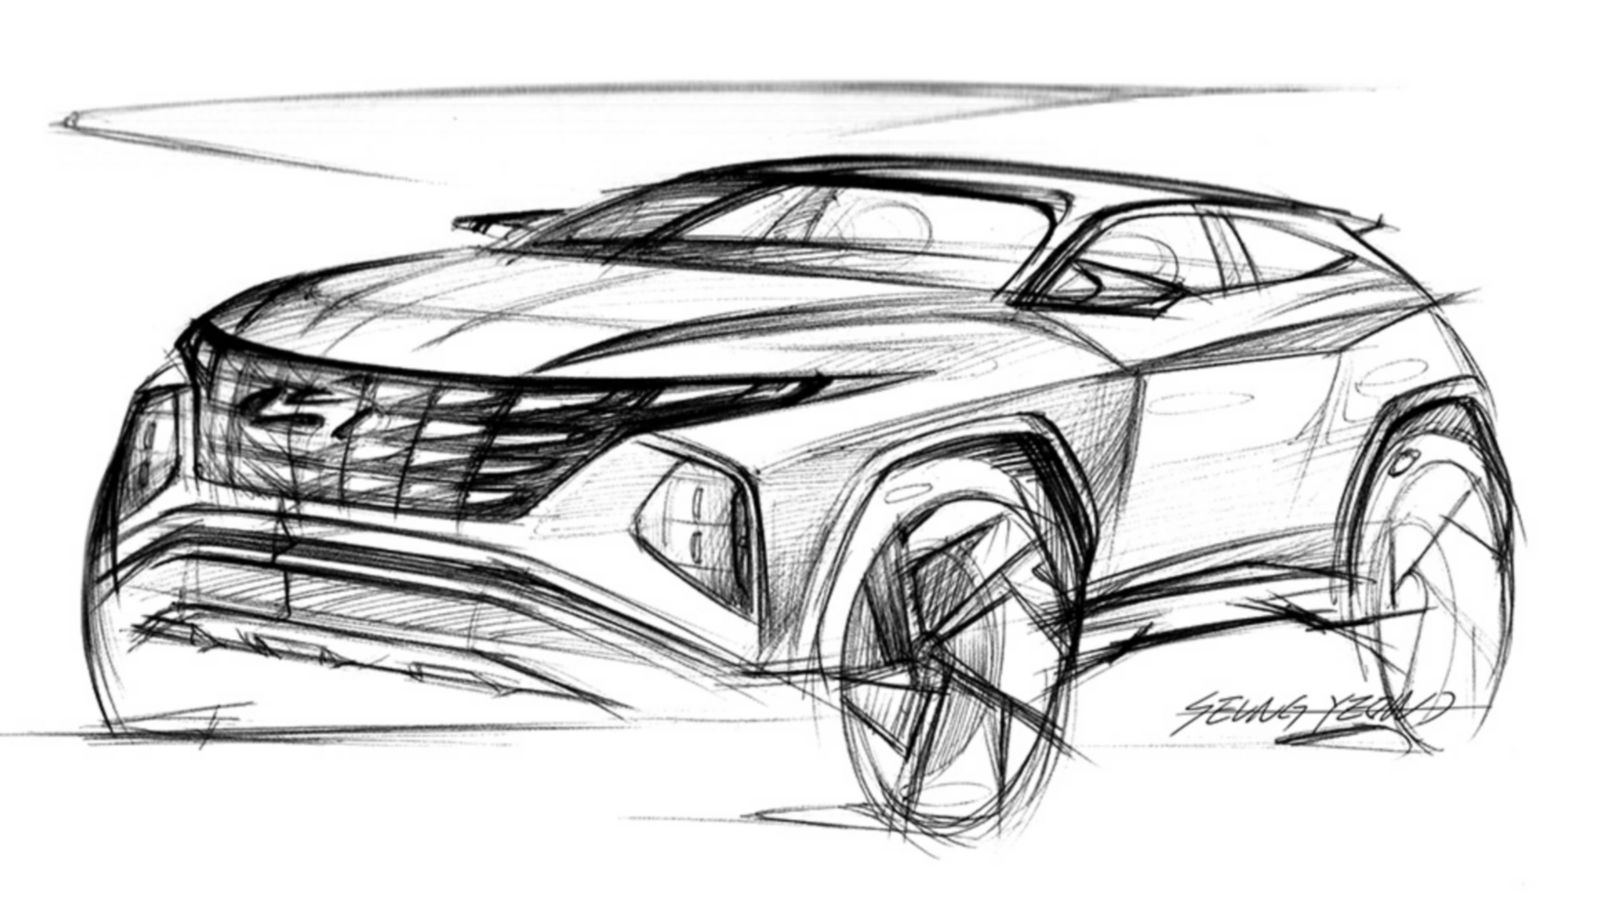 Design sketch of the all-new Hyundai Tucson compact SUV pictured from the front.